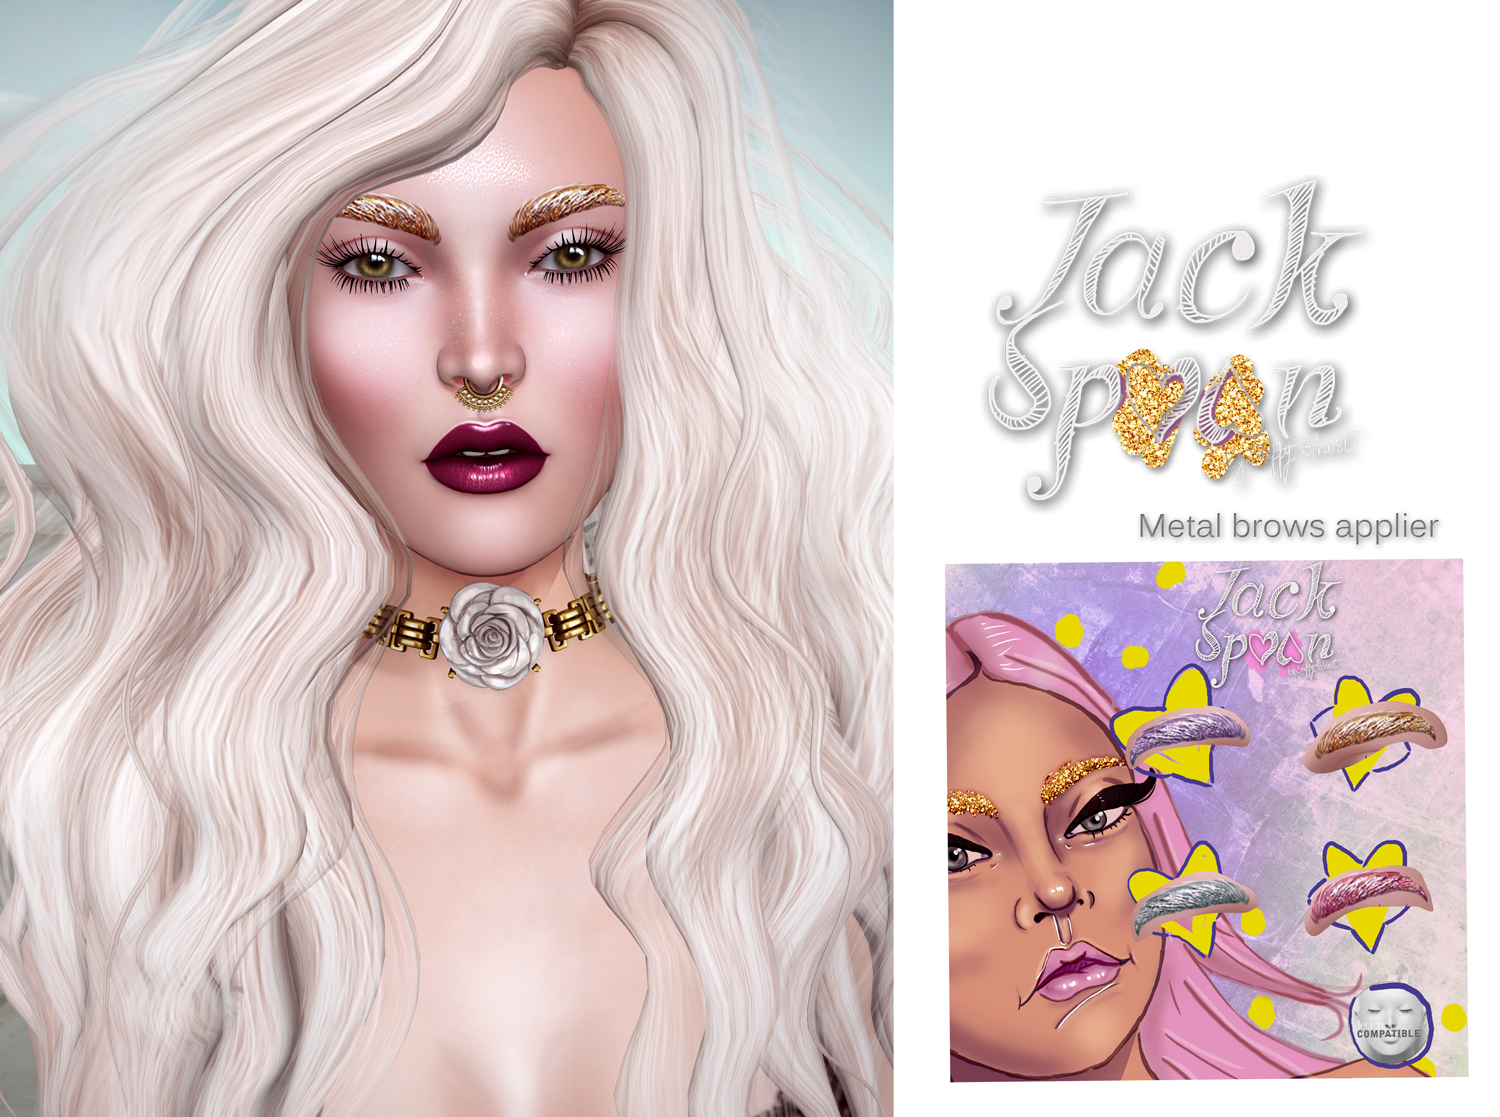 {JACK SPOON} Glitter Brows - Lelutka Applier